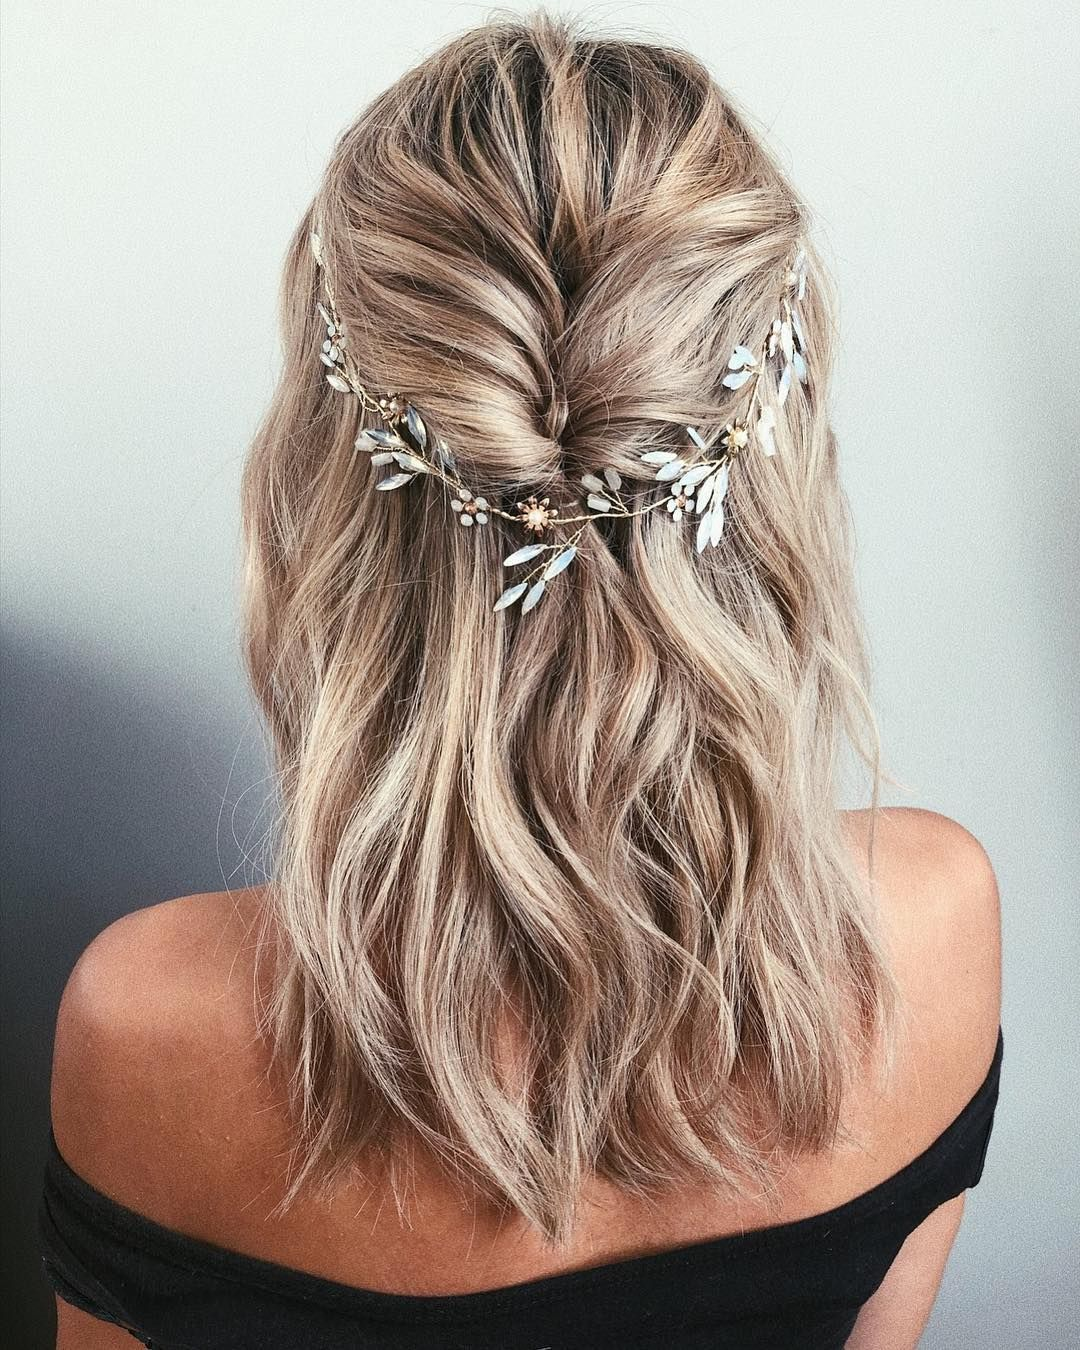 11 Special Occasion Hairstyles For Long Hair  Hair styles